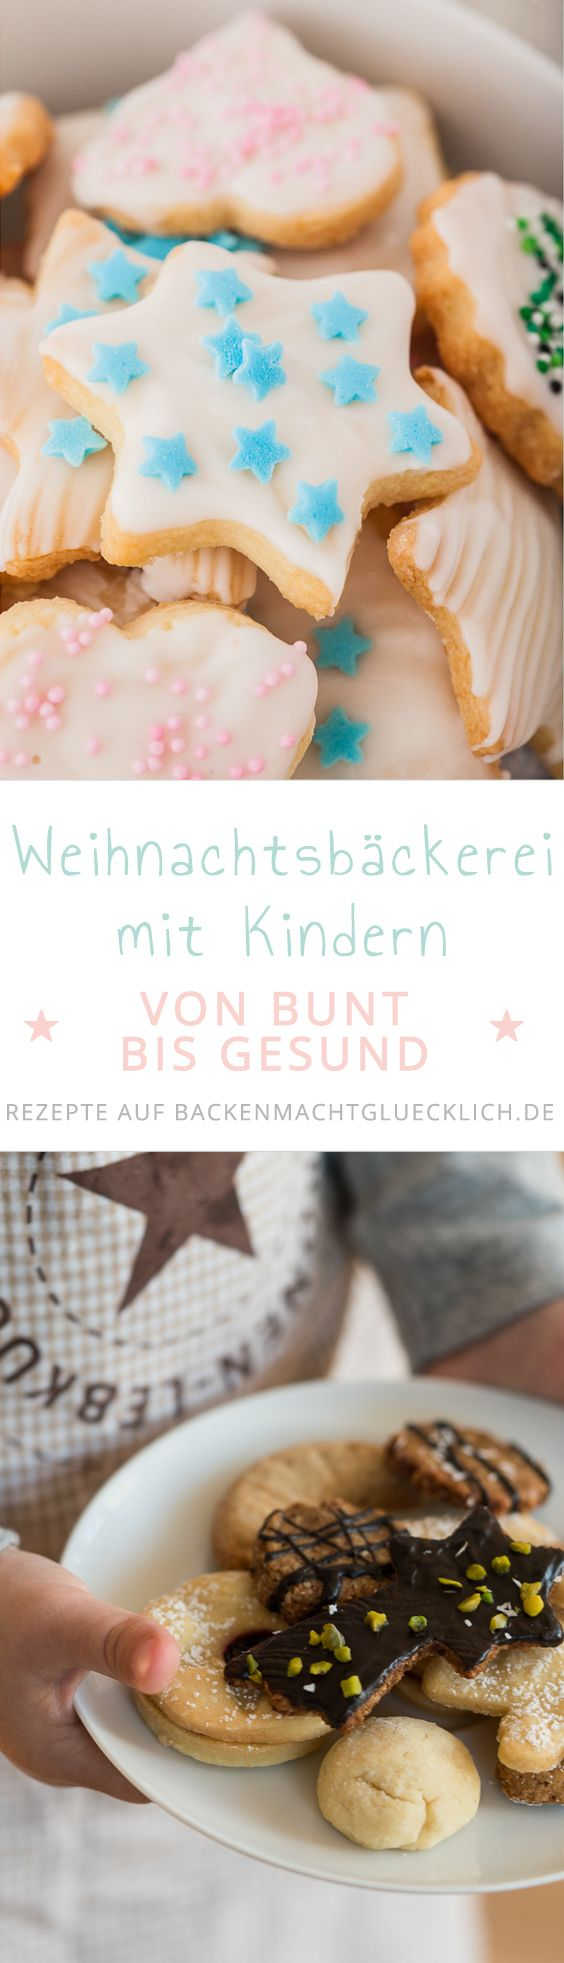 die besten 25 backen mit kindern ideen auf pinterest kinder backen kochen f r kinder und. Black Bedroom Furniture Sets. Home Design Ideas